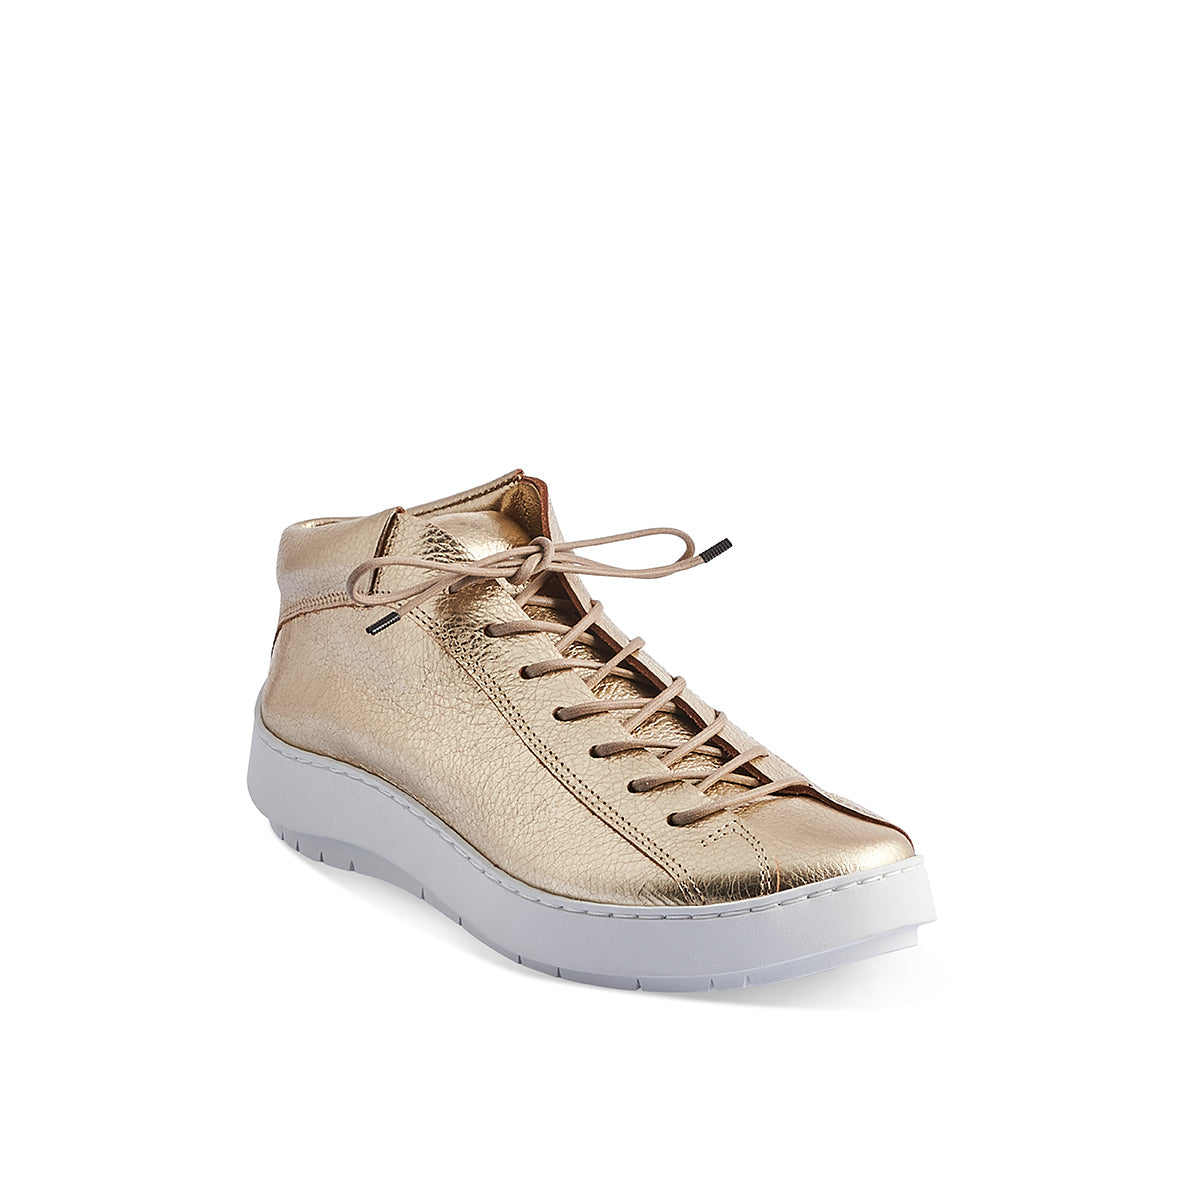 A new luxe trainer by Trippen, Hop is handcrafted on the super-comfy 'swan' sole and has a contoured leather insole for additional support. The veg-tanned leather upper is unlined and beautifully hugs the foot, while the sport-style lacing allows for an adjustable fit through the width.